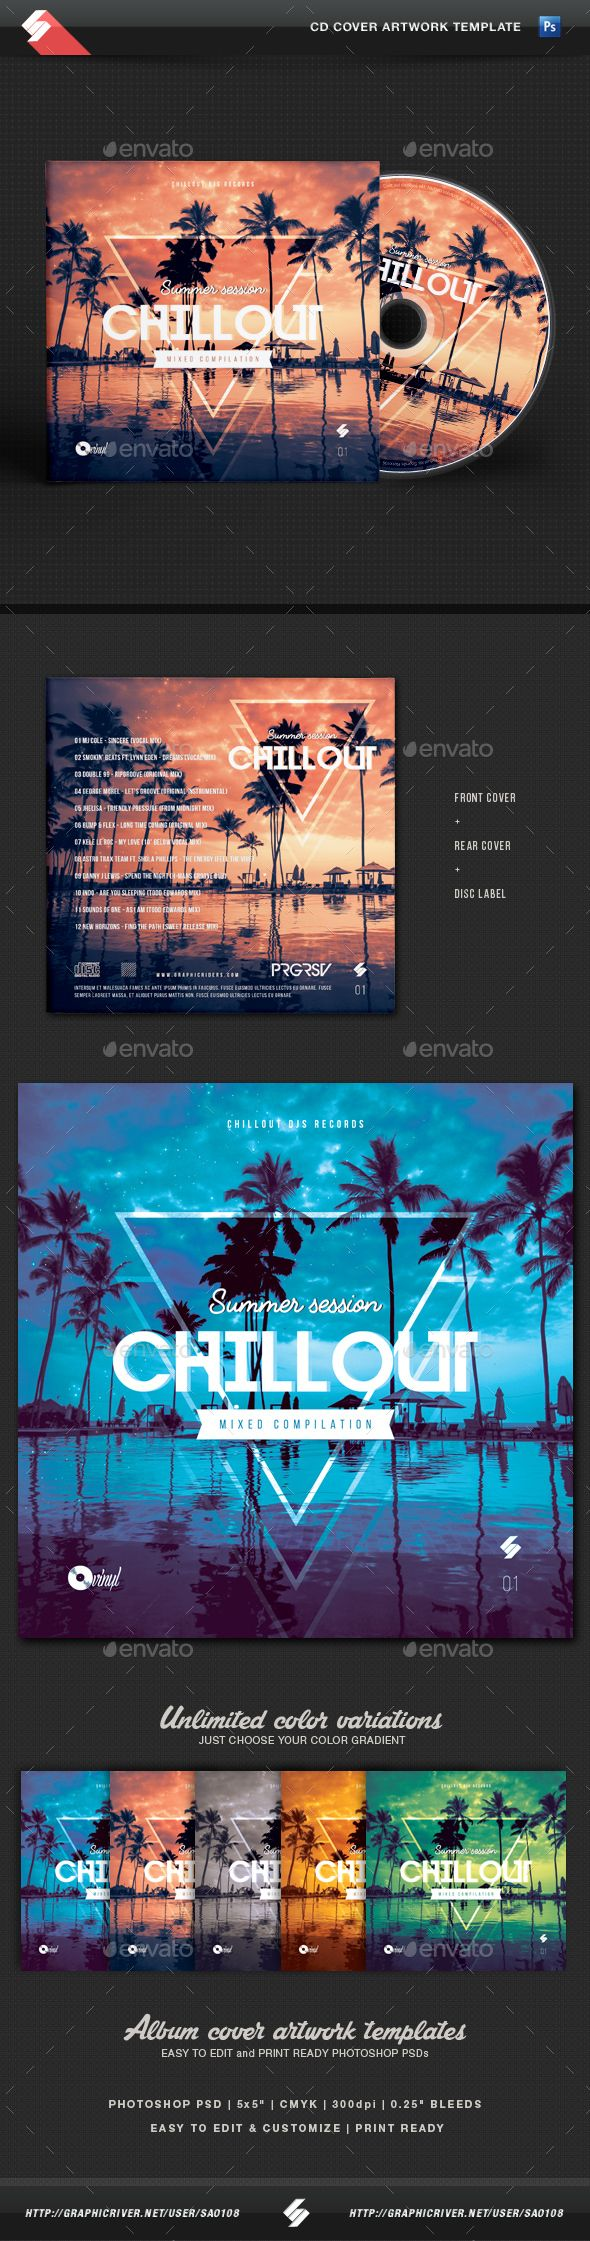 Cd box template download free vector art stock graphics amp images - Summer Session Chillout Cd Cover Artwork Template